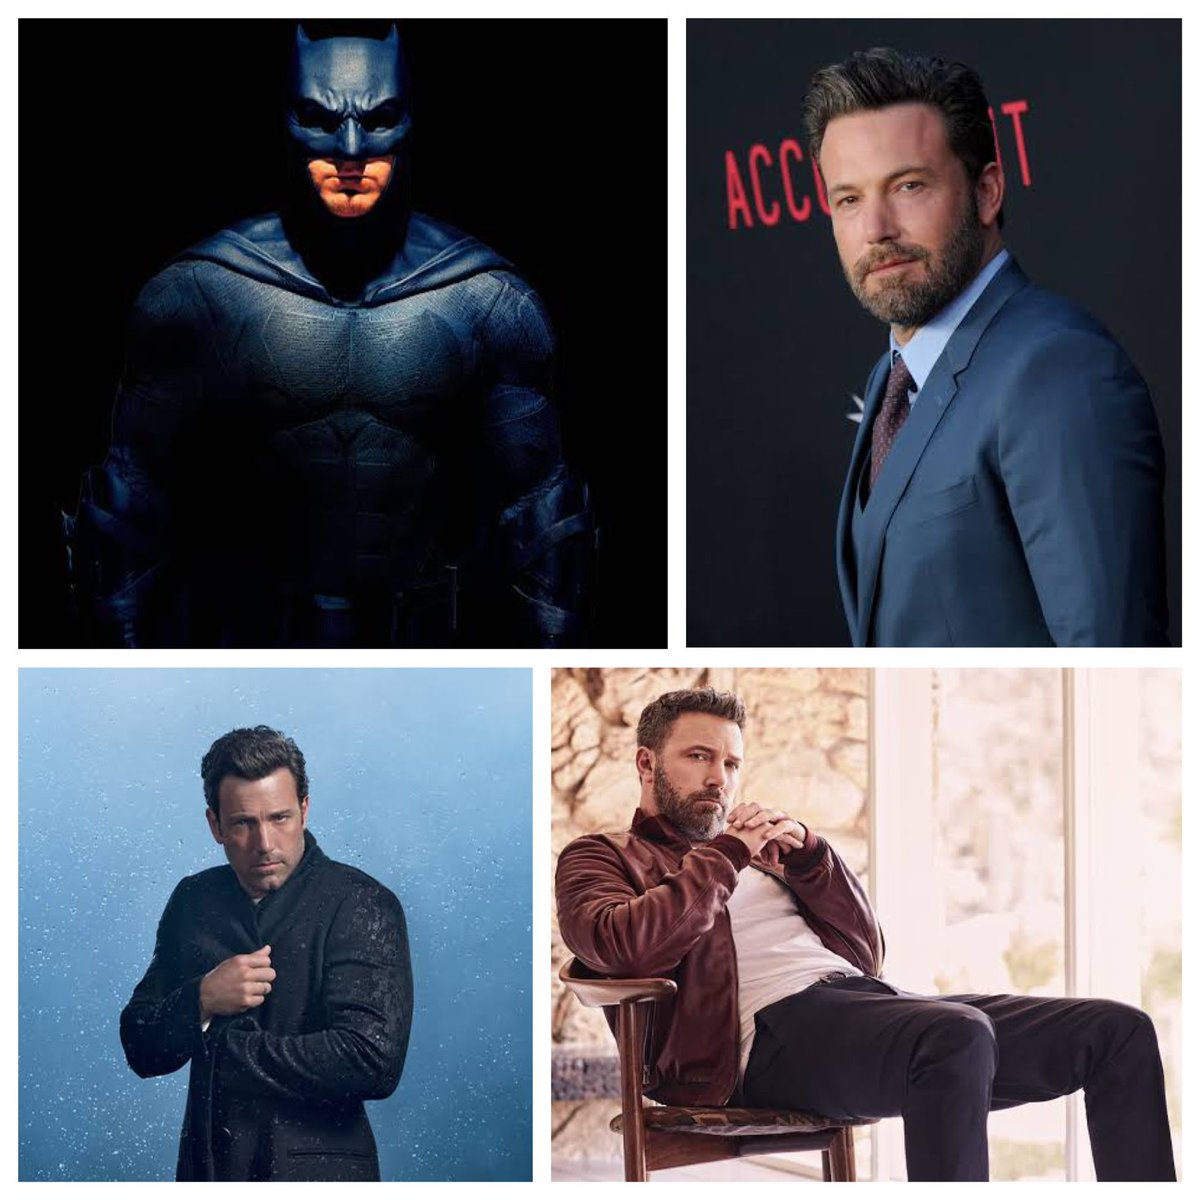 Happy birthday to one of the best filmmakers & my favorite Batman, Ben Affleck. His starting career from THE VOYAGE OF THE MIMI, to an acclaimed actor/director of THE TOWN & ARGO. Don't forget his humanitarian work for the ECI is just amazing. #HappyBirthdayBenAffleck